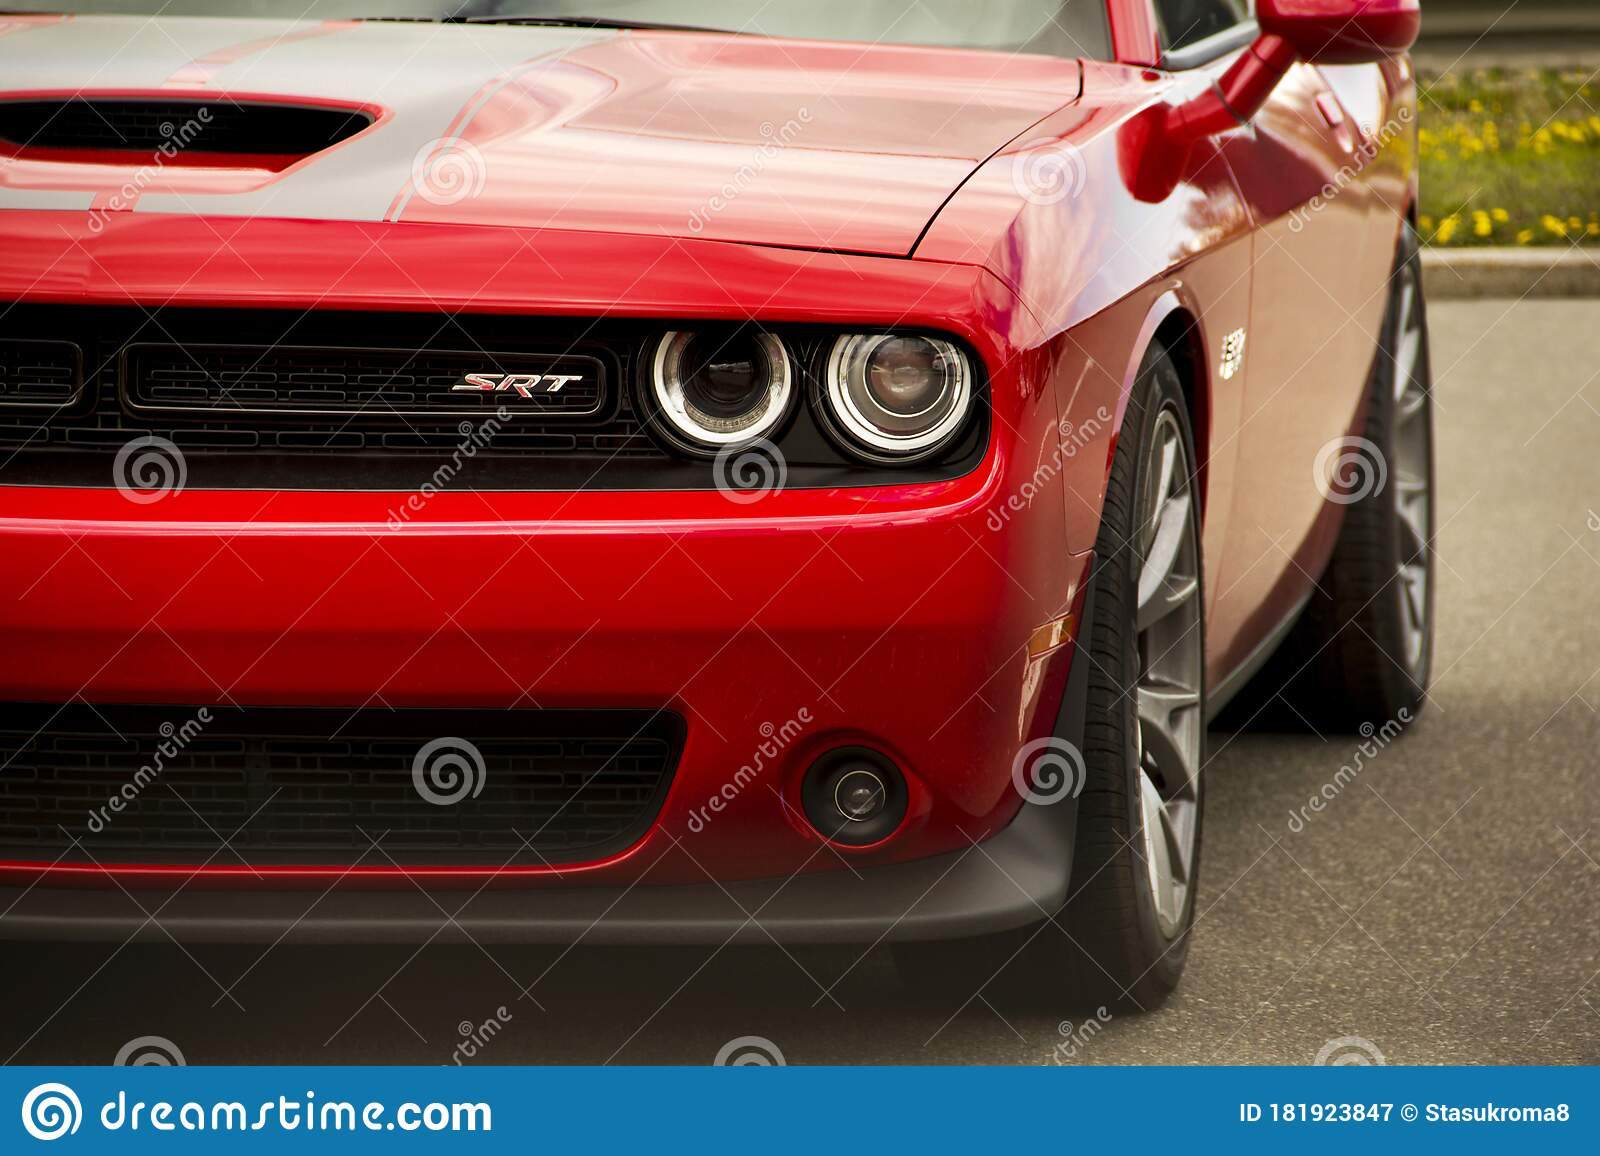 Kiev Ukraine April 21 2020 Muscle Car Dodge Challenger Srt8 392 Hemi Front Of The Car Close Up Red Car Editorial Photography Image Of Drive Modified 181923847